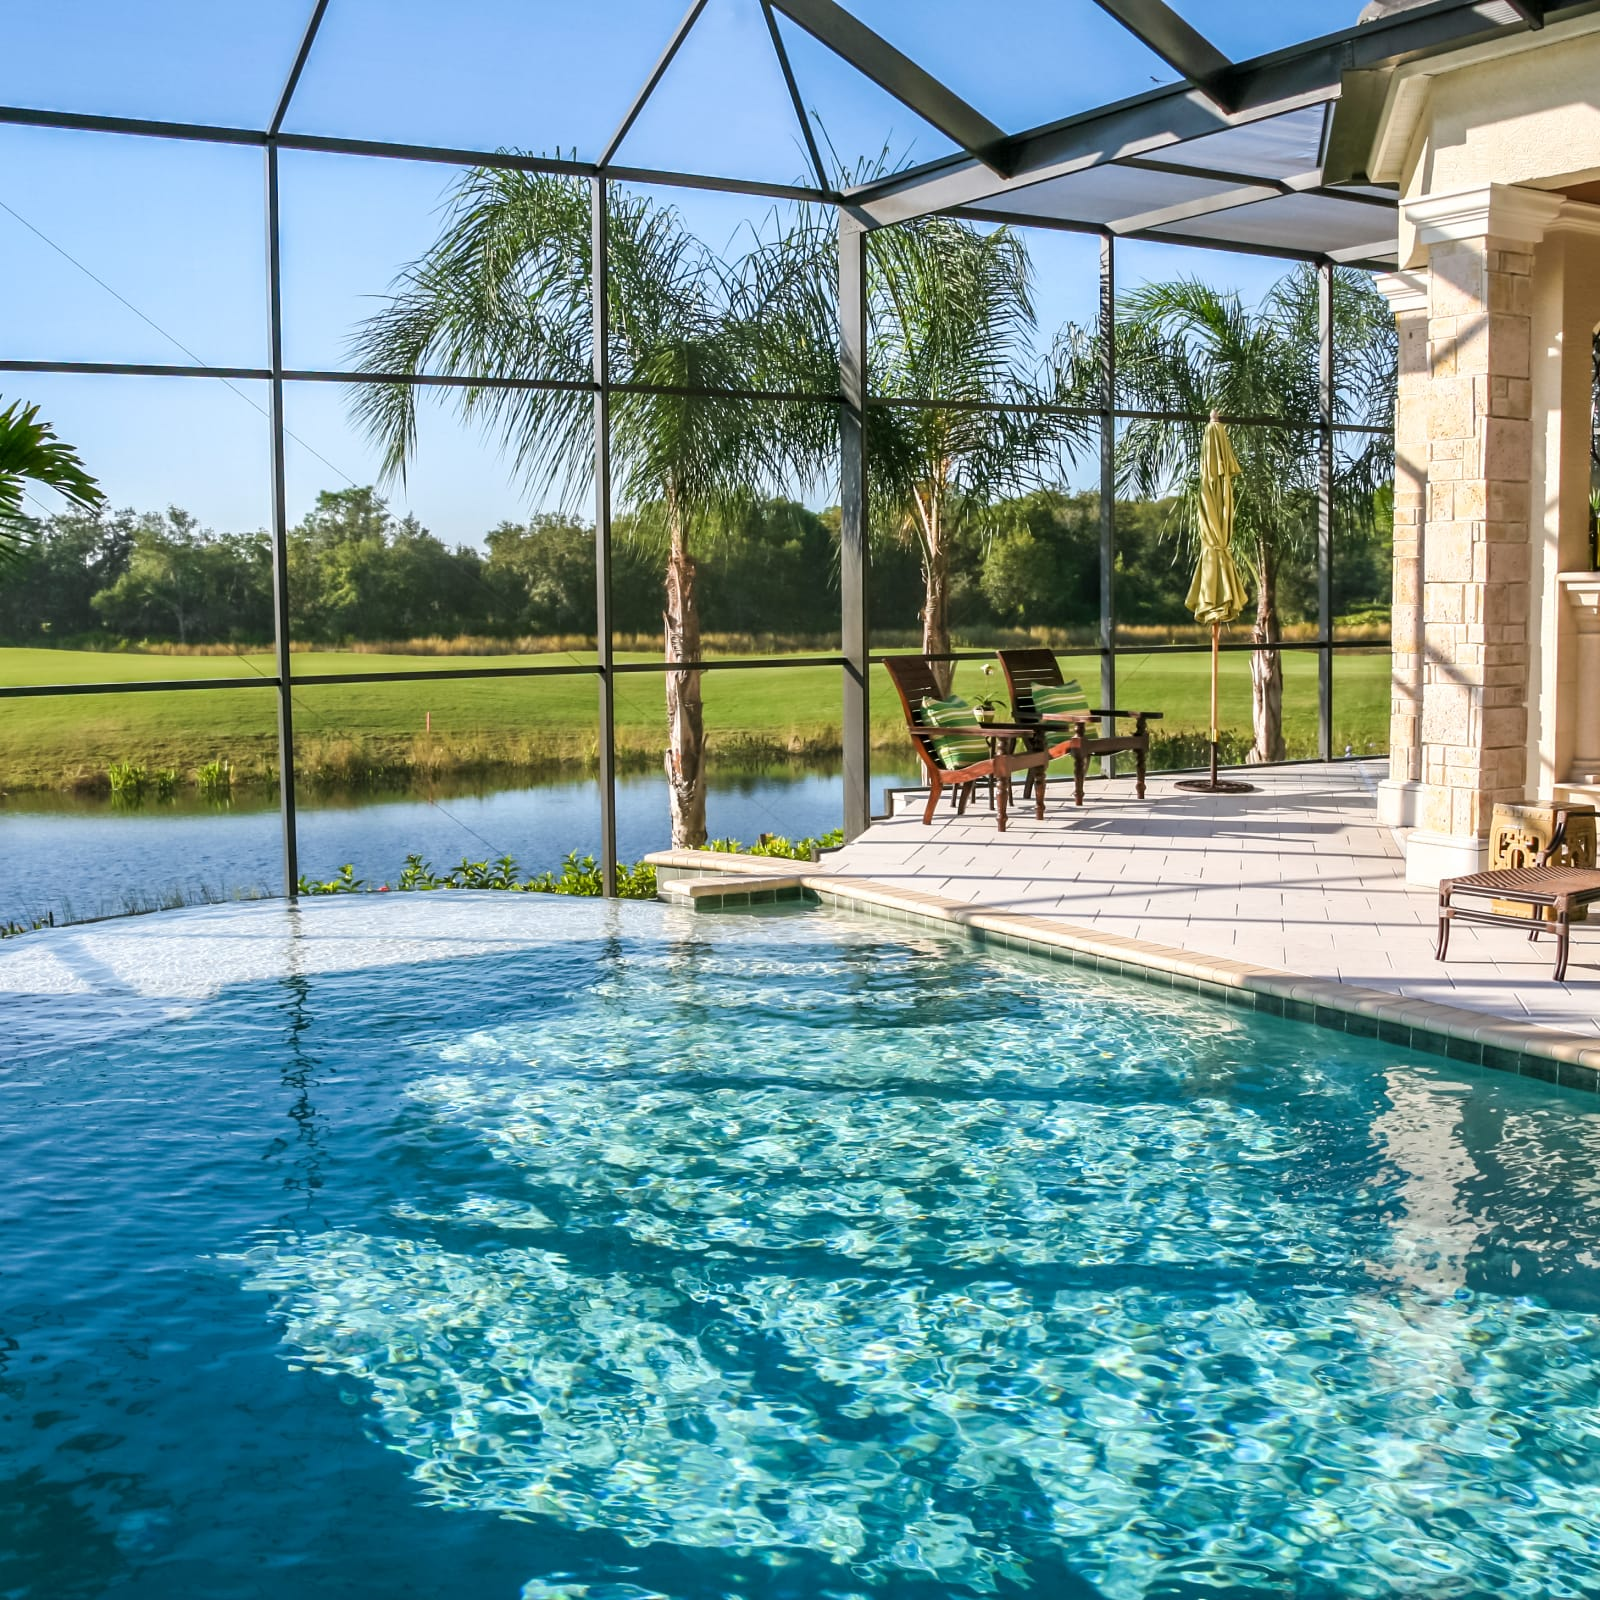 Mansion with indoor pool with diving board  How A Pool Affects Your Homeowners Insurance - ValuePenguin